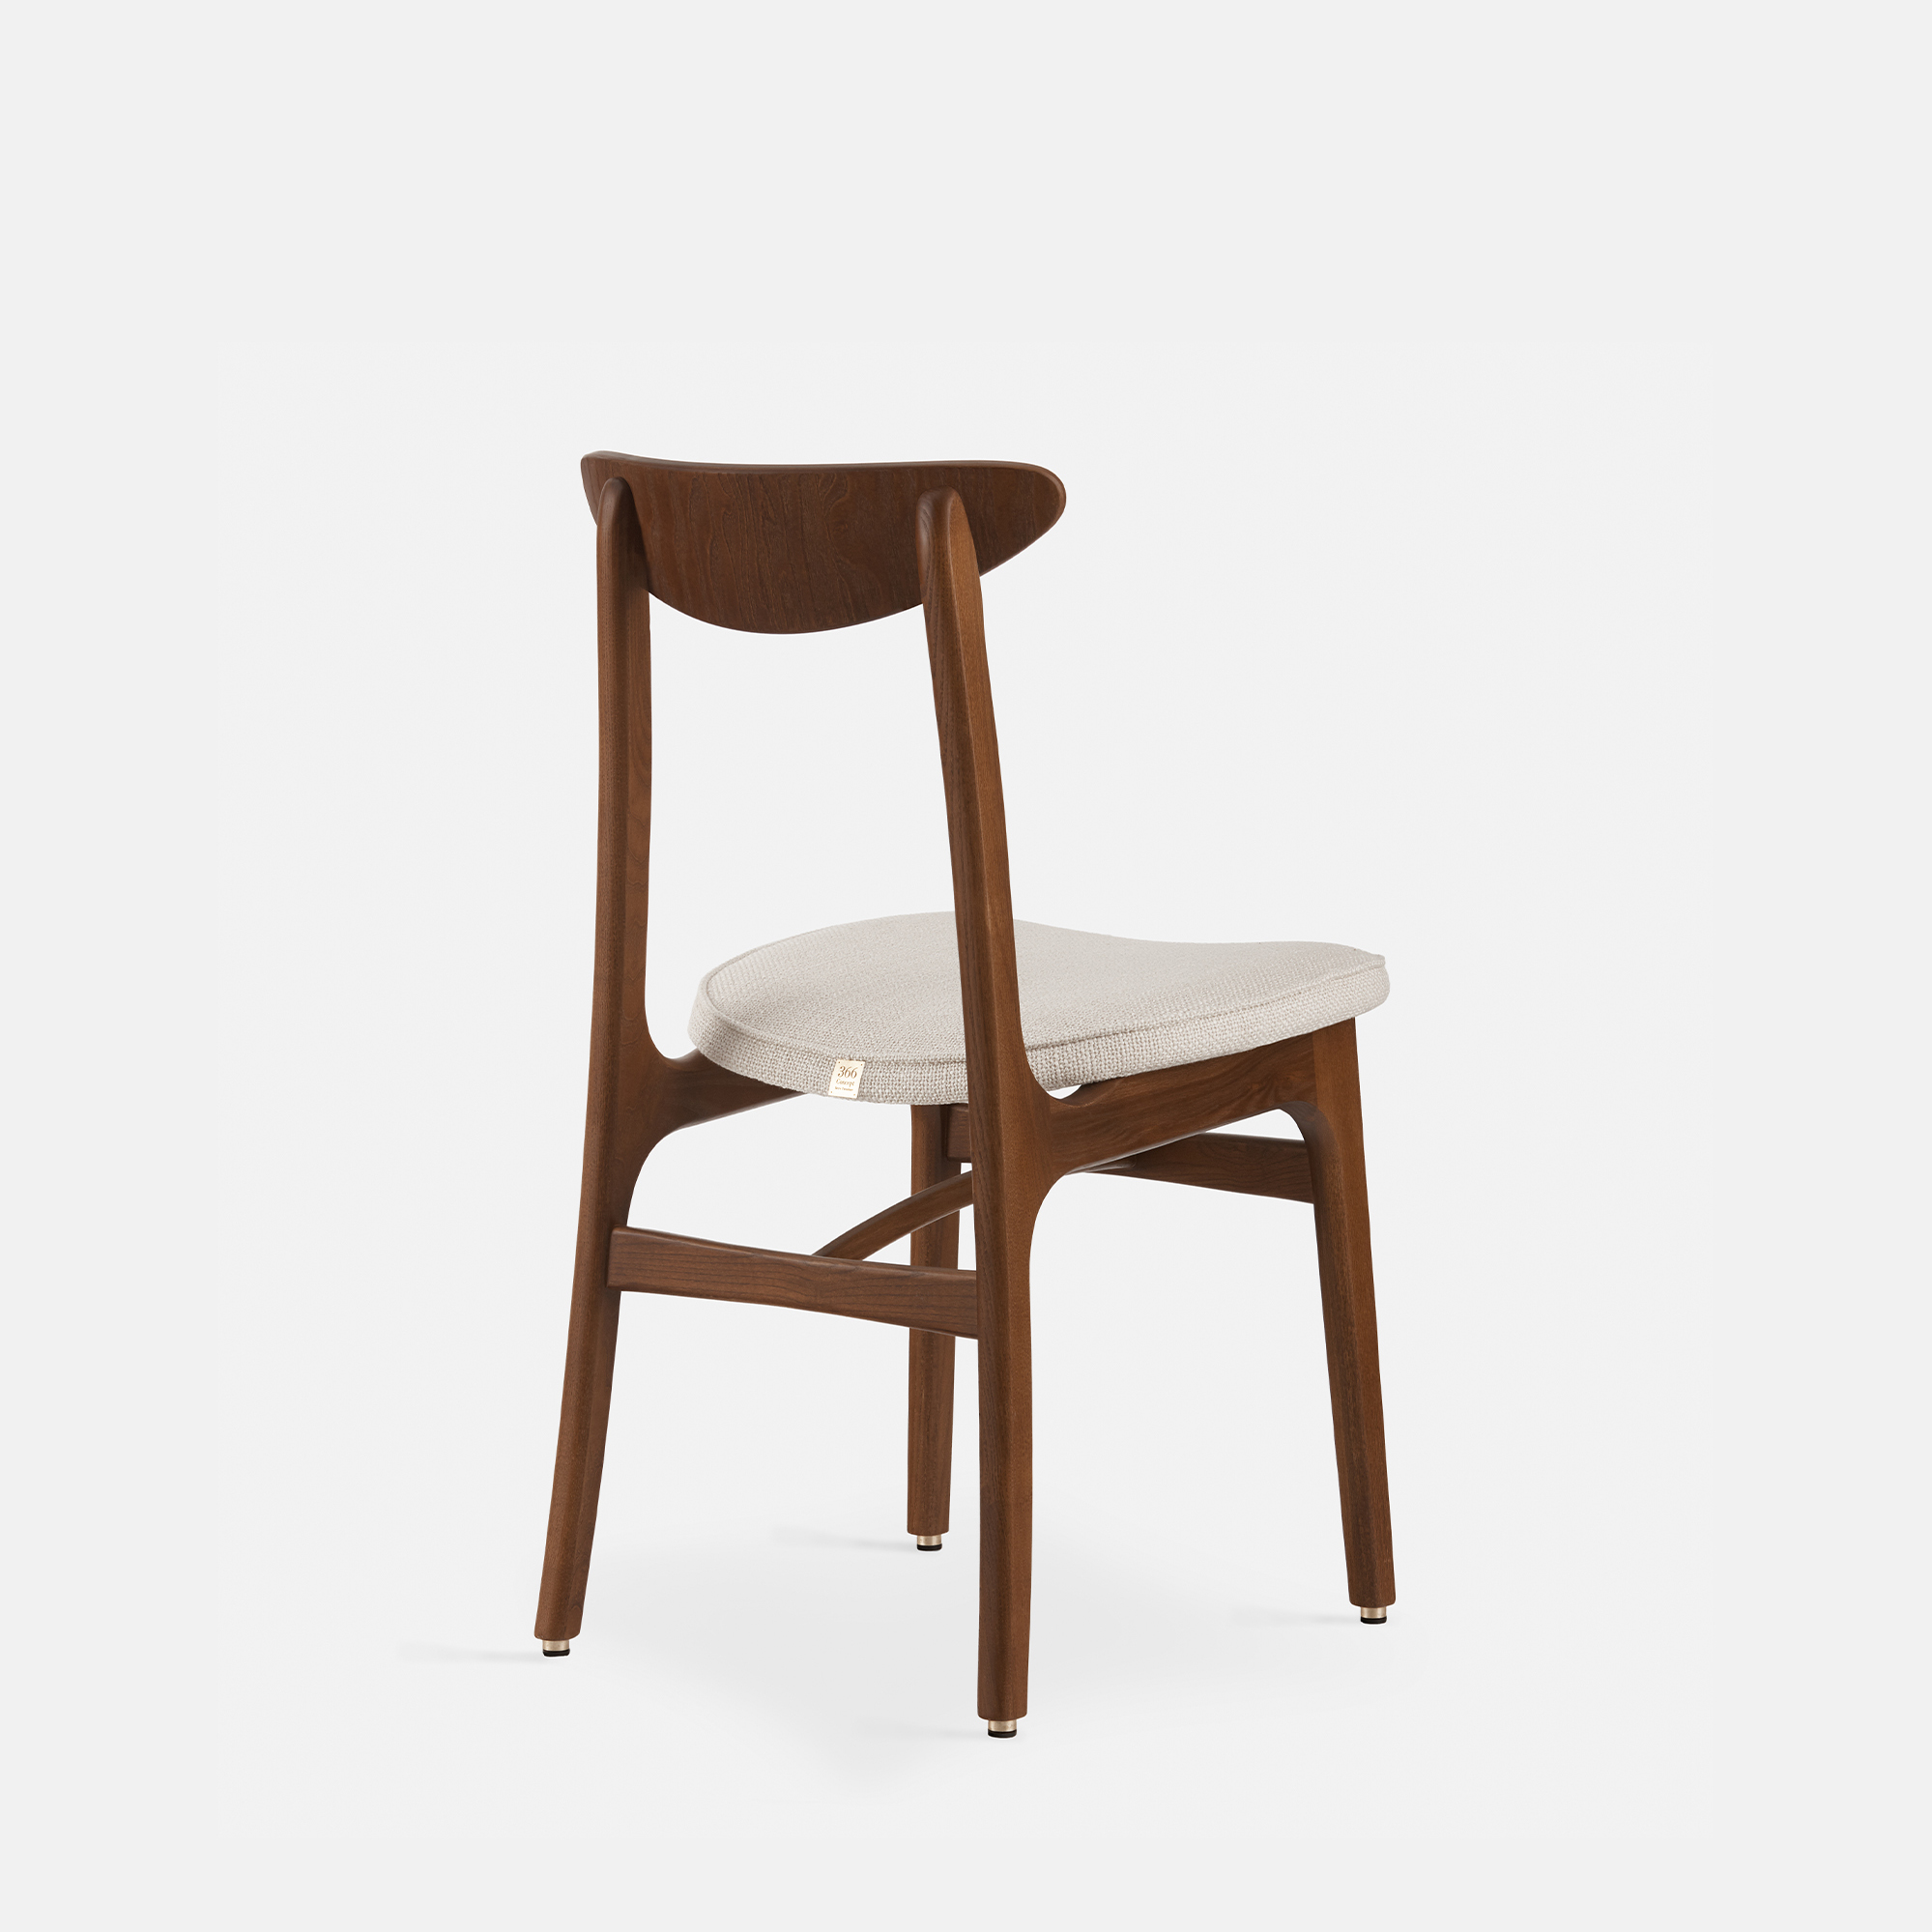 366-Concept-200-190-Chair-Mix-W05-Marble-White-back